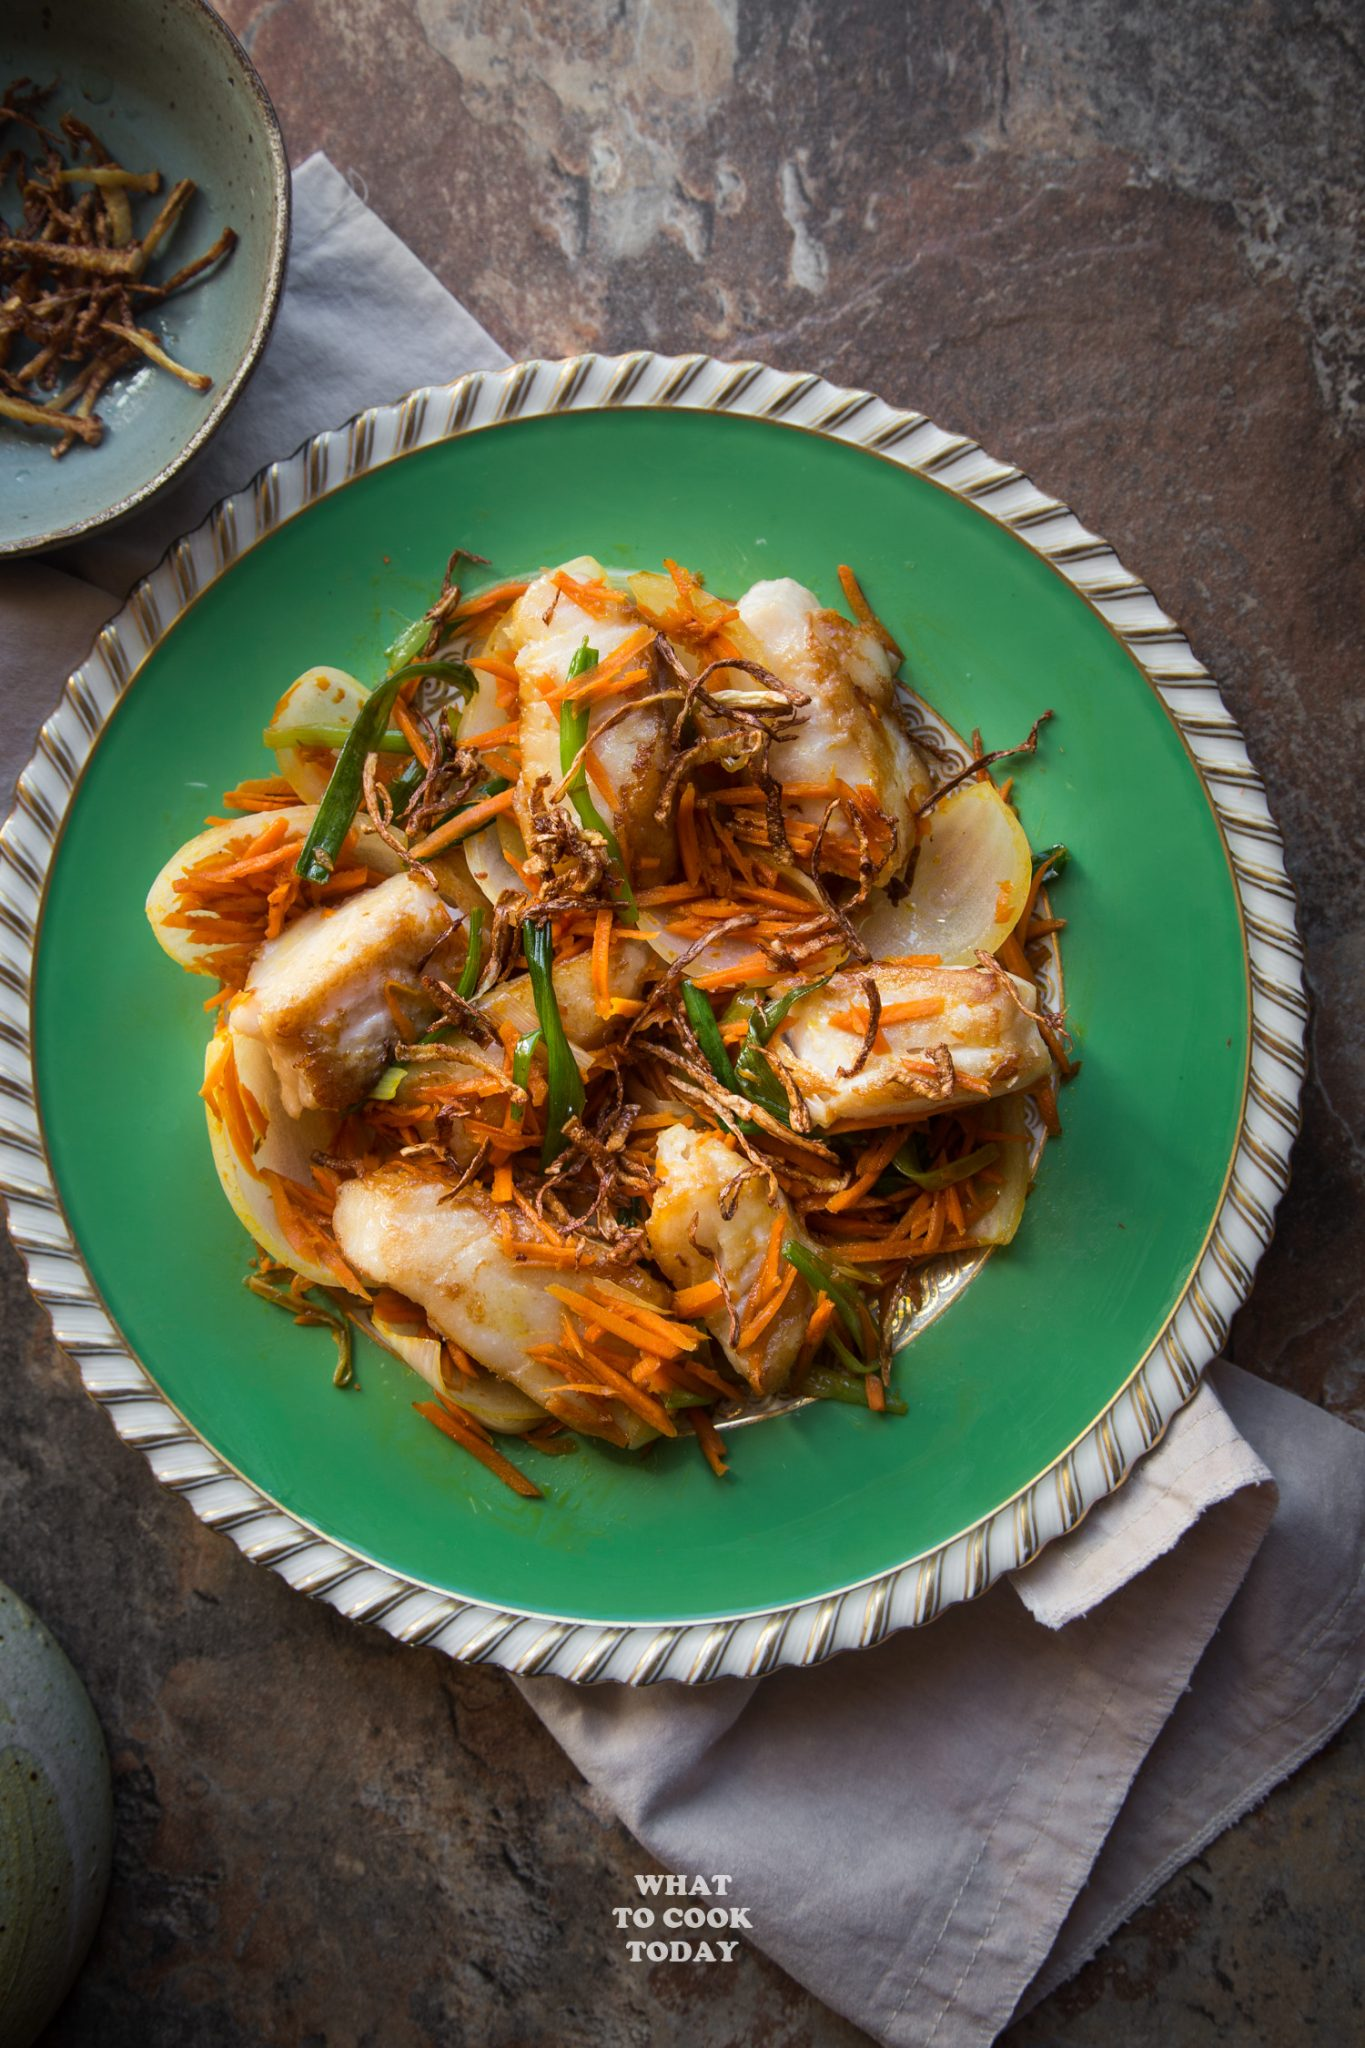 Pan-fried Cod Fish with Crispy Ginger #fish #seafood #ginger #easyrecipe #asianrecipe